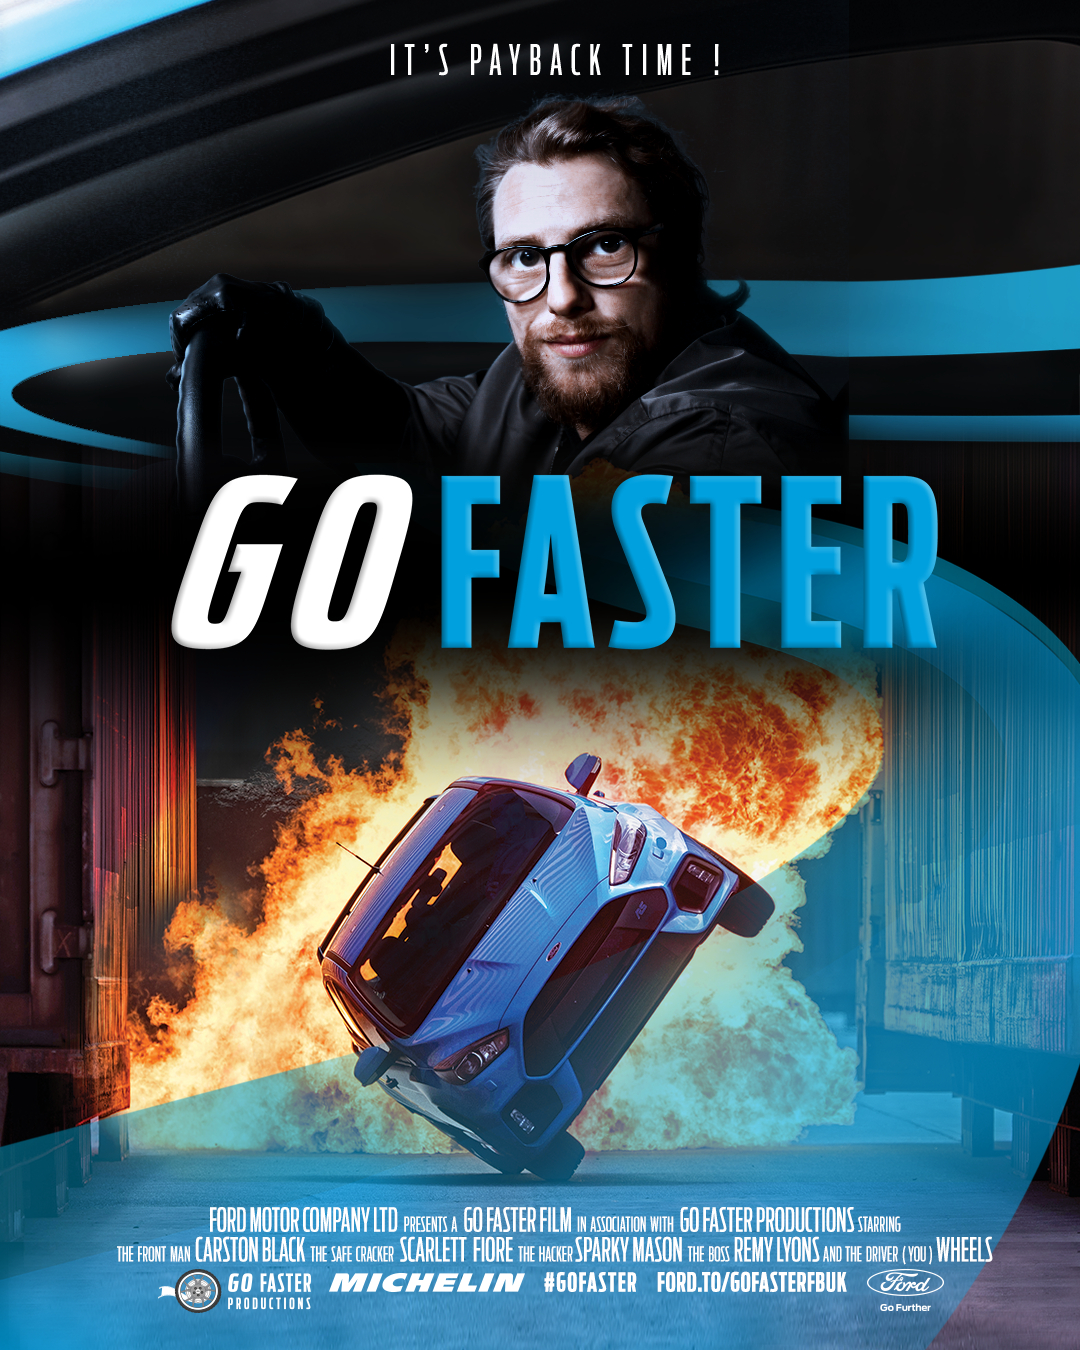 The London Journalist's Richi Leonard at the 'Go Faster' Ford Motor Company experience